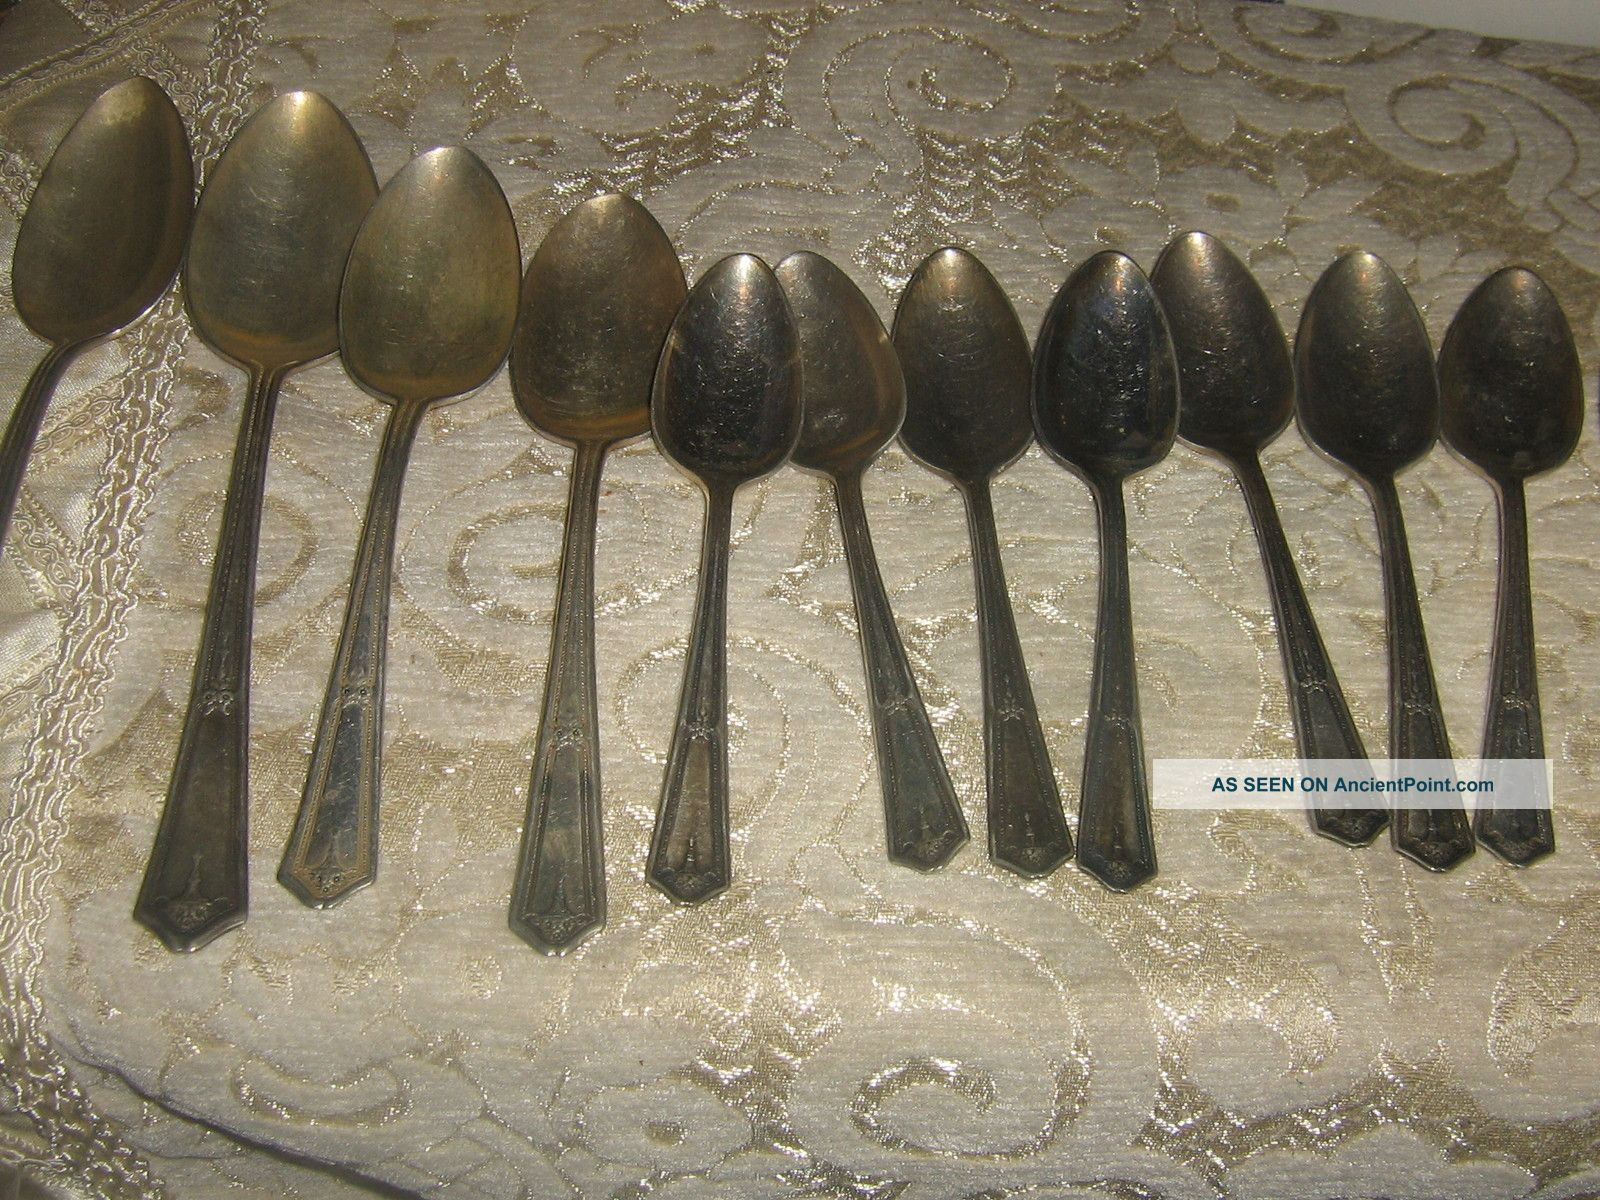 12 Piece Branford Silver Plate Flatware Spoon Other photo